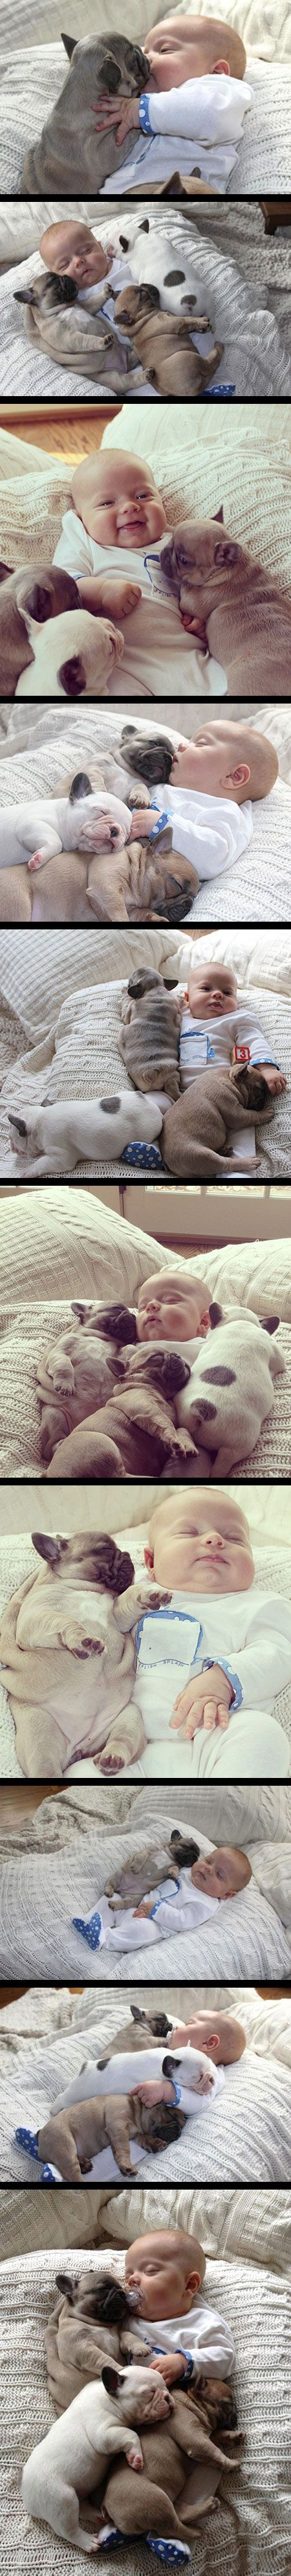 I defy you to find a cuter image of a baby and a dog